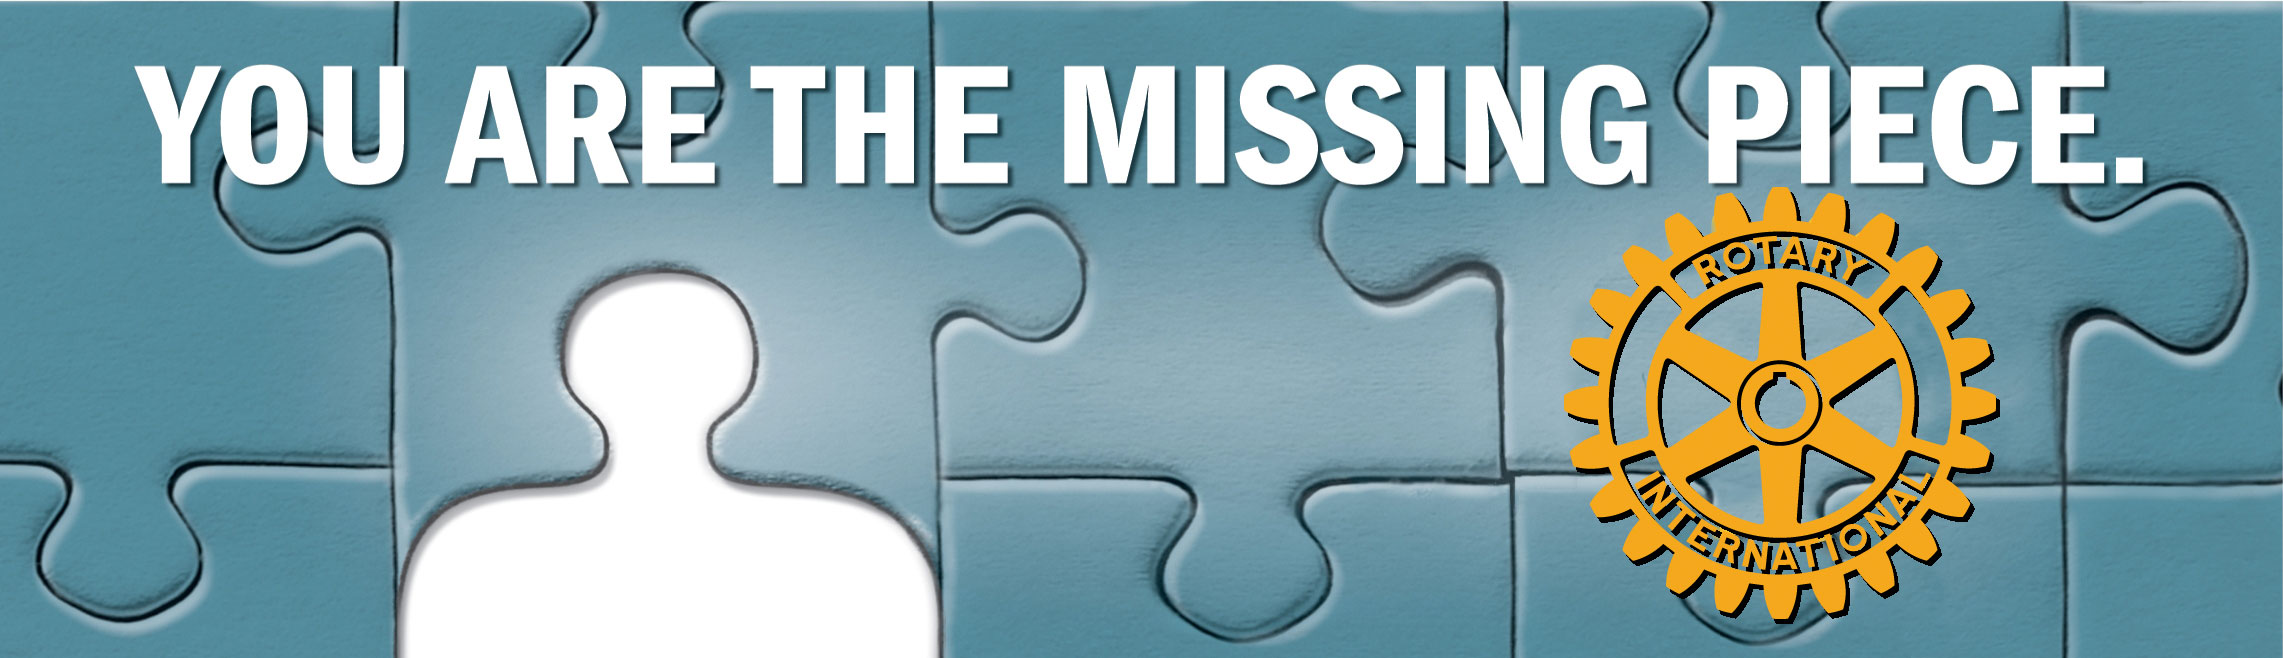 Your Are The Missing Piece